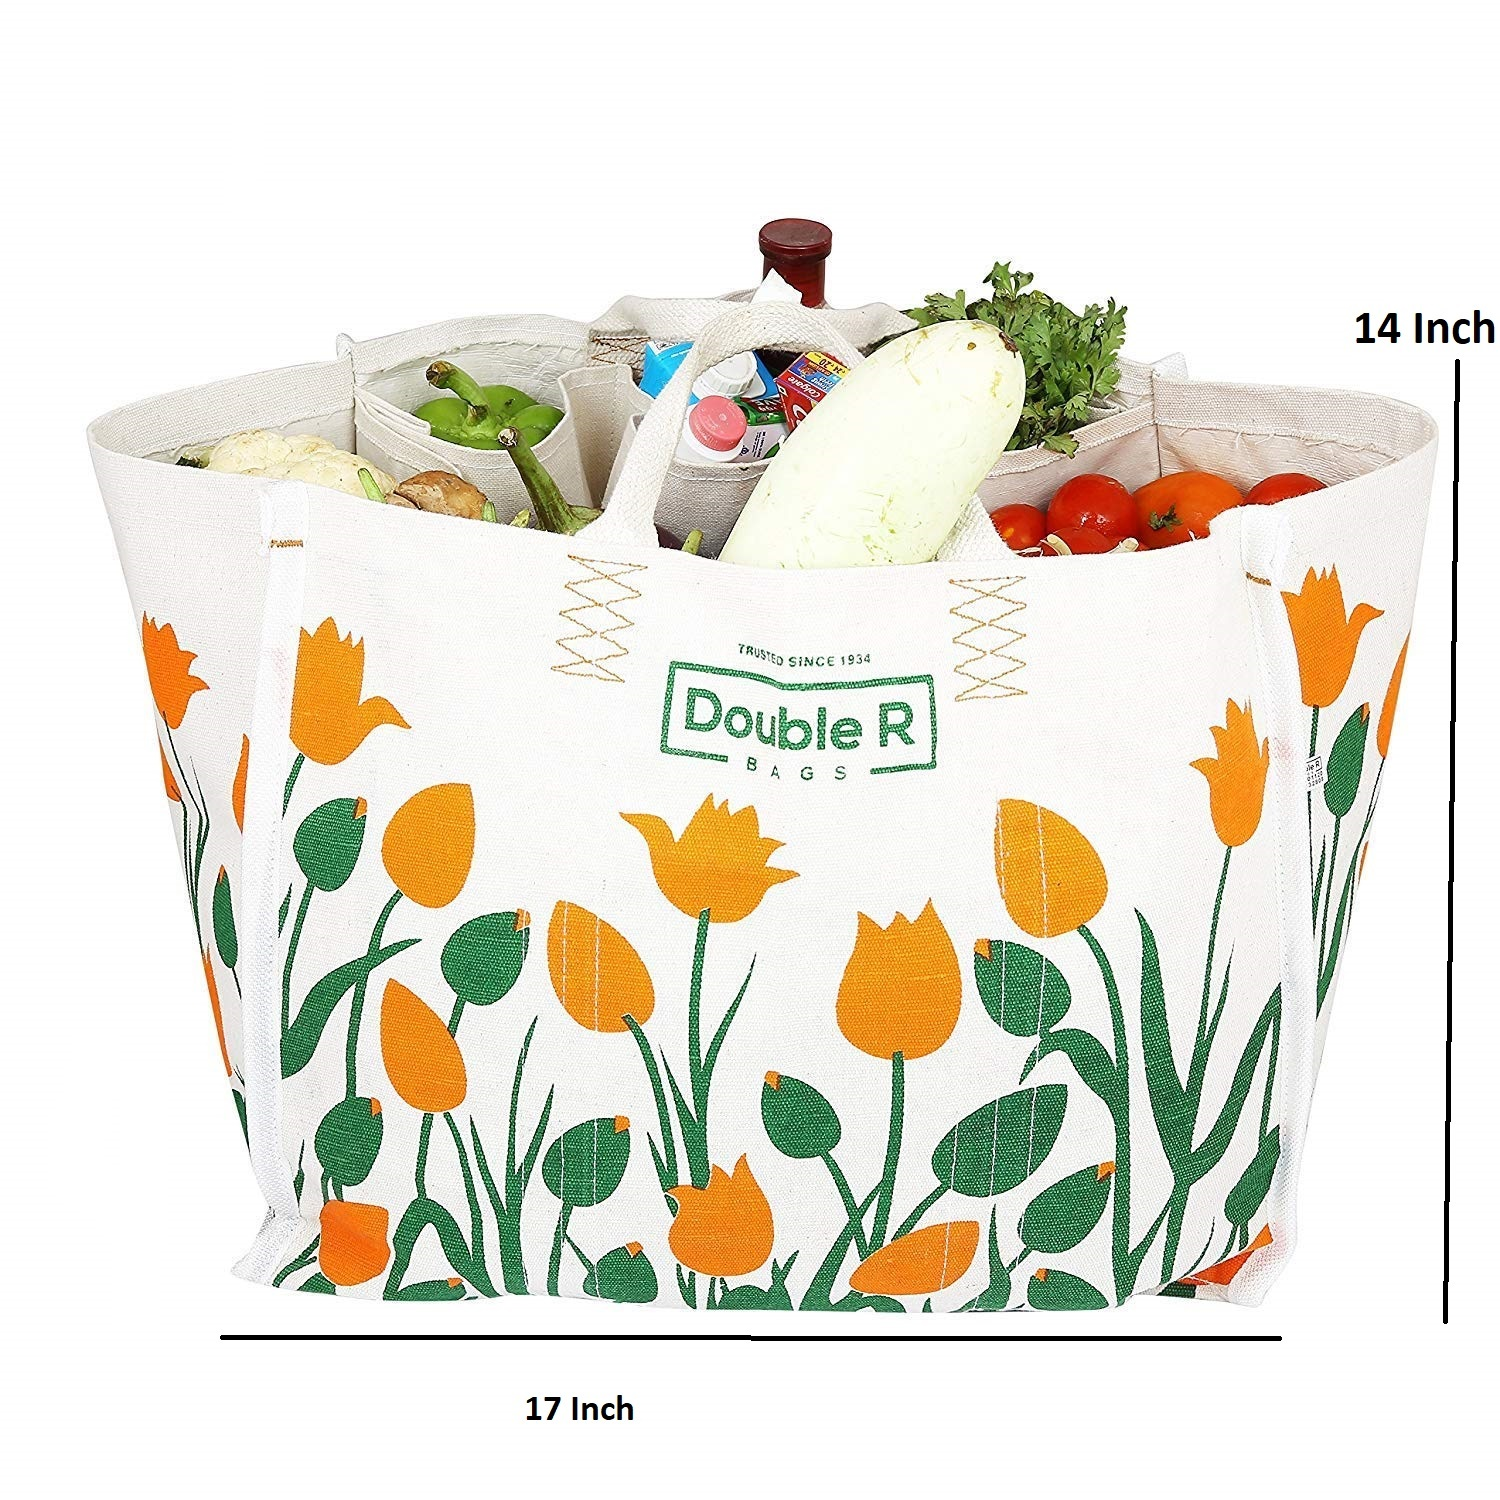 Double R Large Heavy Duty Waterproof Shopping Bags Kitchen Essentials/Grocery Bag/Vegetable Bag/jhola / Carry Bag/thela